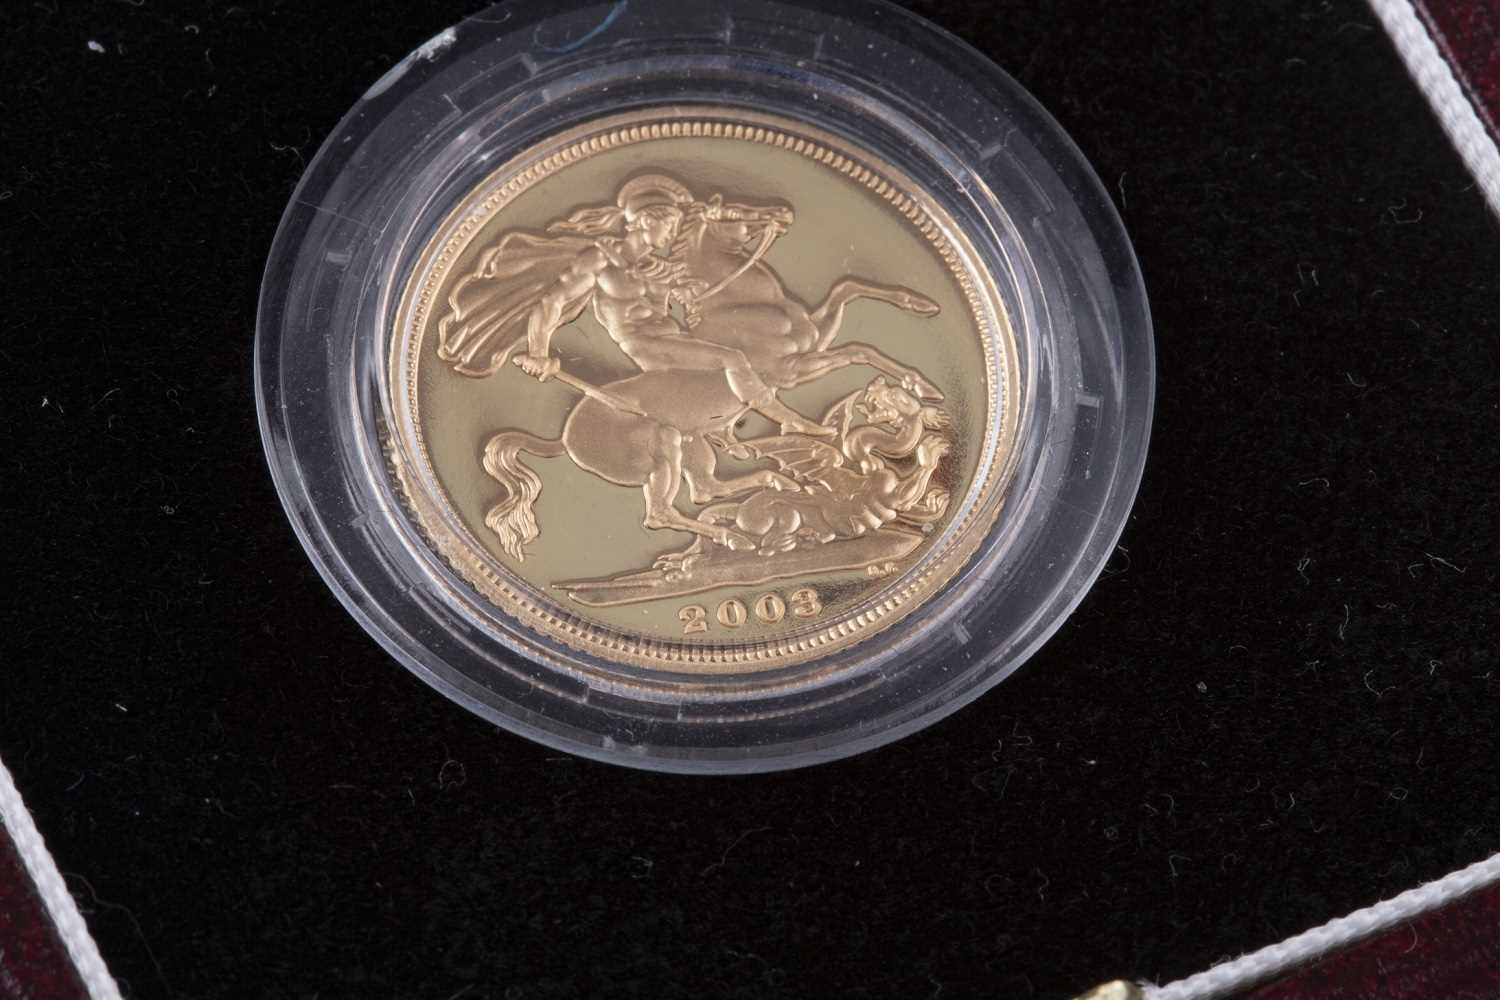 Lot 511-A THE ROYAL MINT PROOF SOVEREIGN 2003